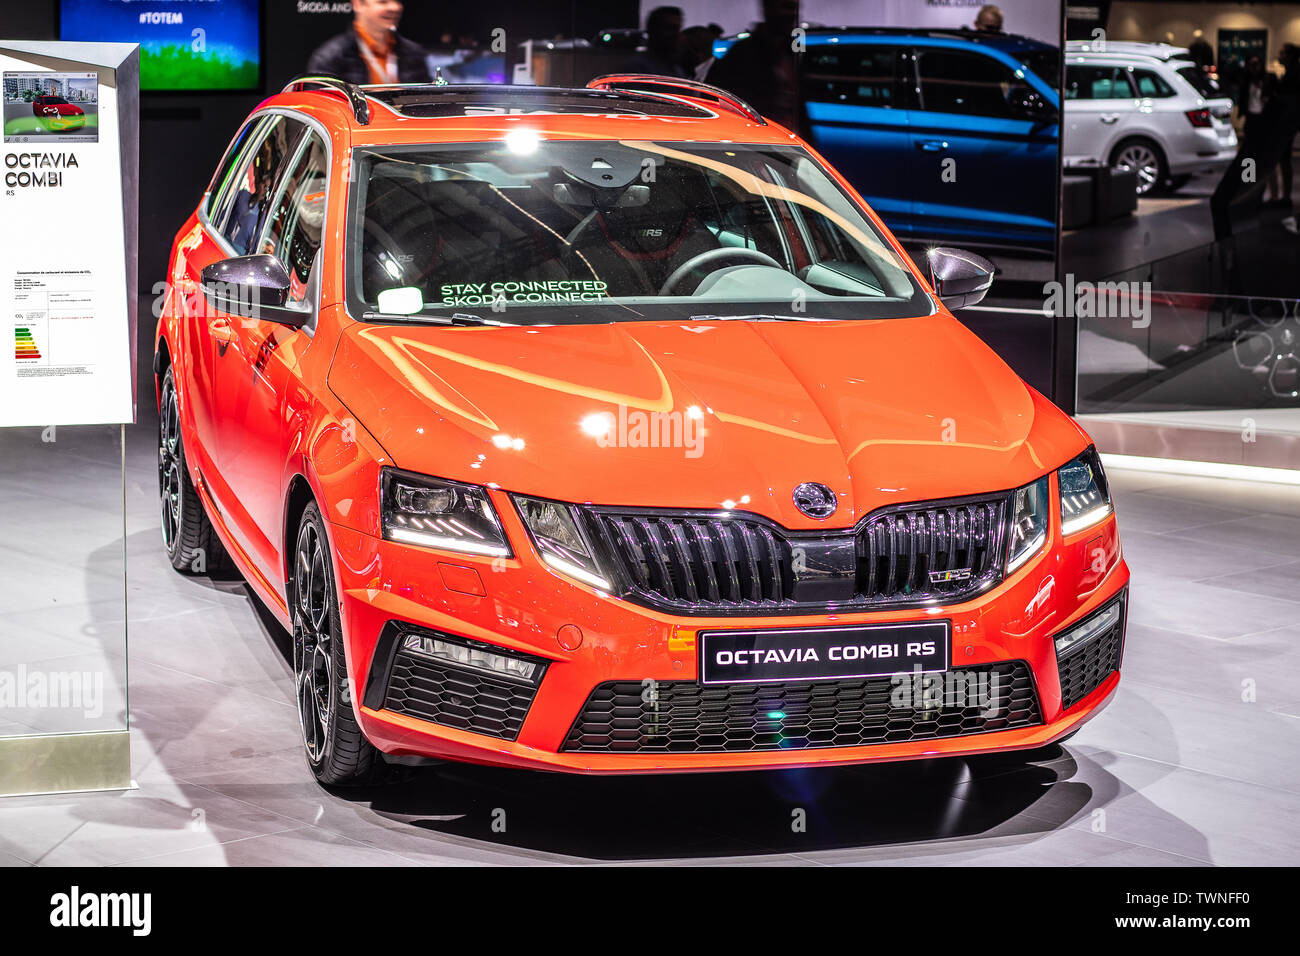 Paris France Oct 2018 Red New Skoda Octavia Combi Rs Mk3 Facelift Mondial Paris Motor Show Small Family Car Produced By Skoda Auto Stock Photo Alamy